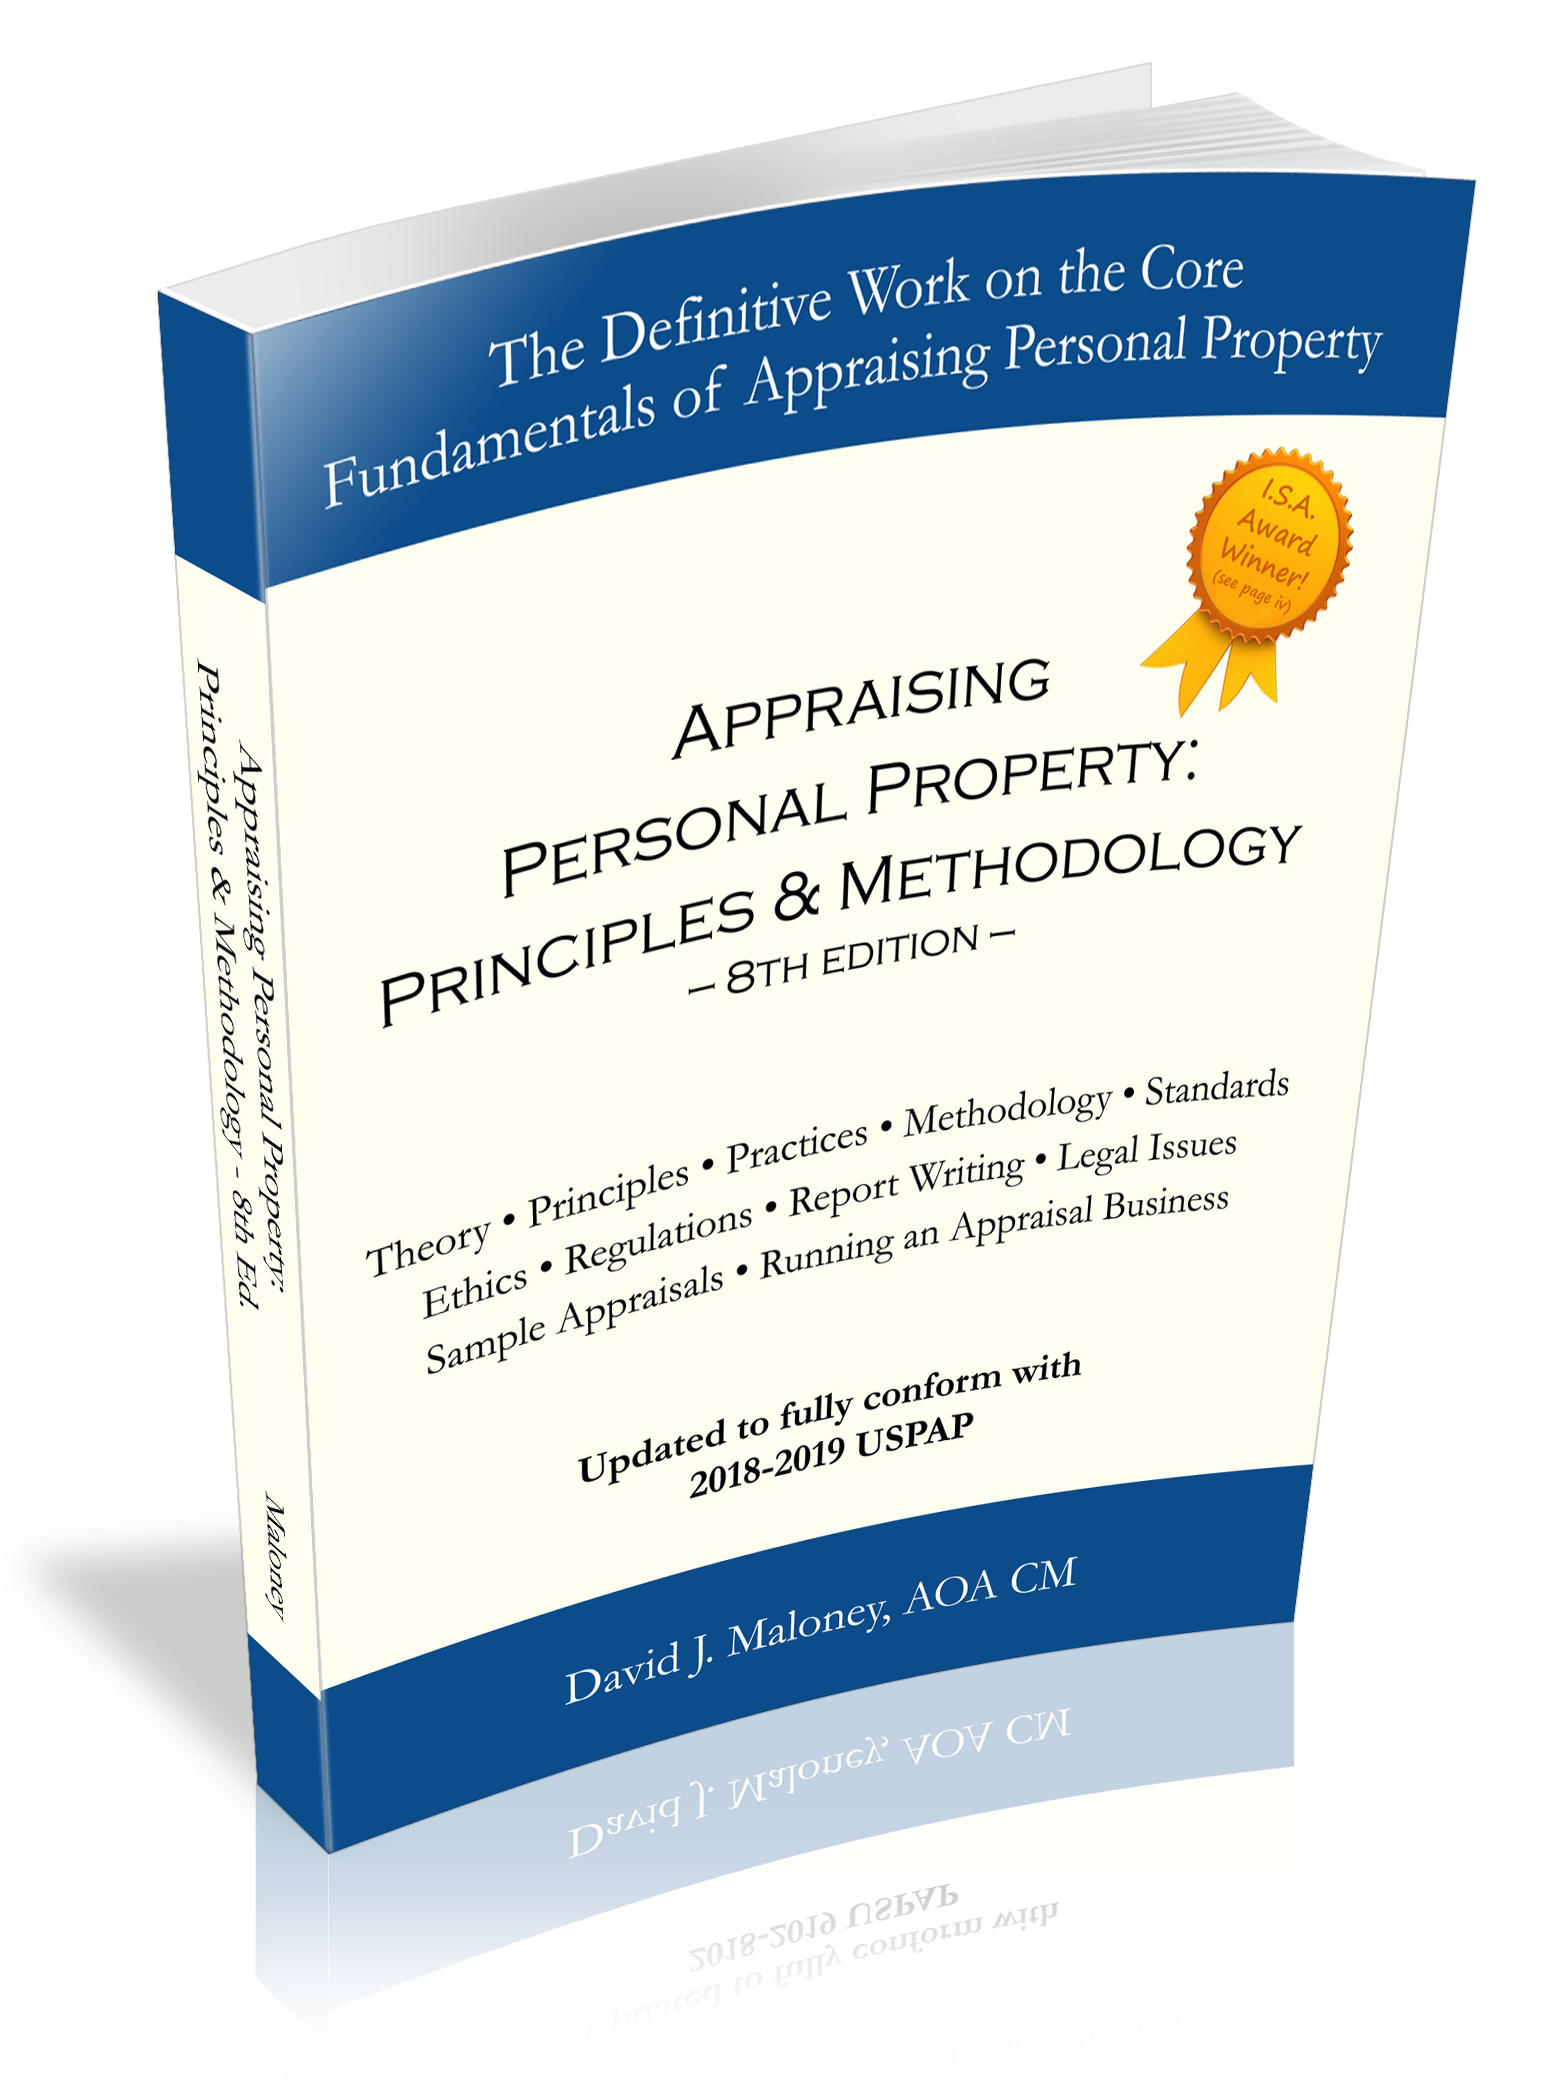 """Appraising Personal Property: Principles & Methodology"" by David Maloney"